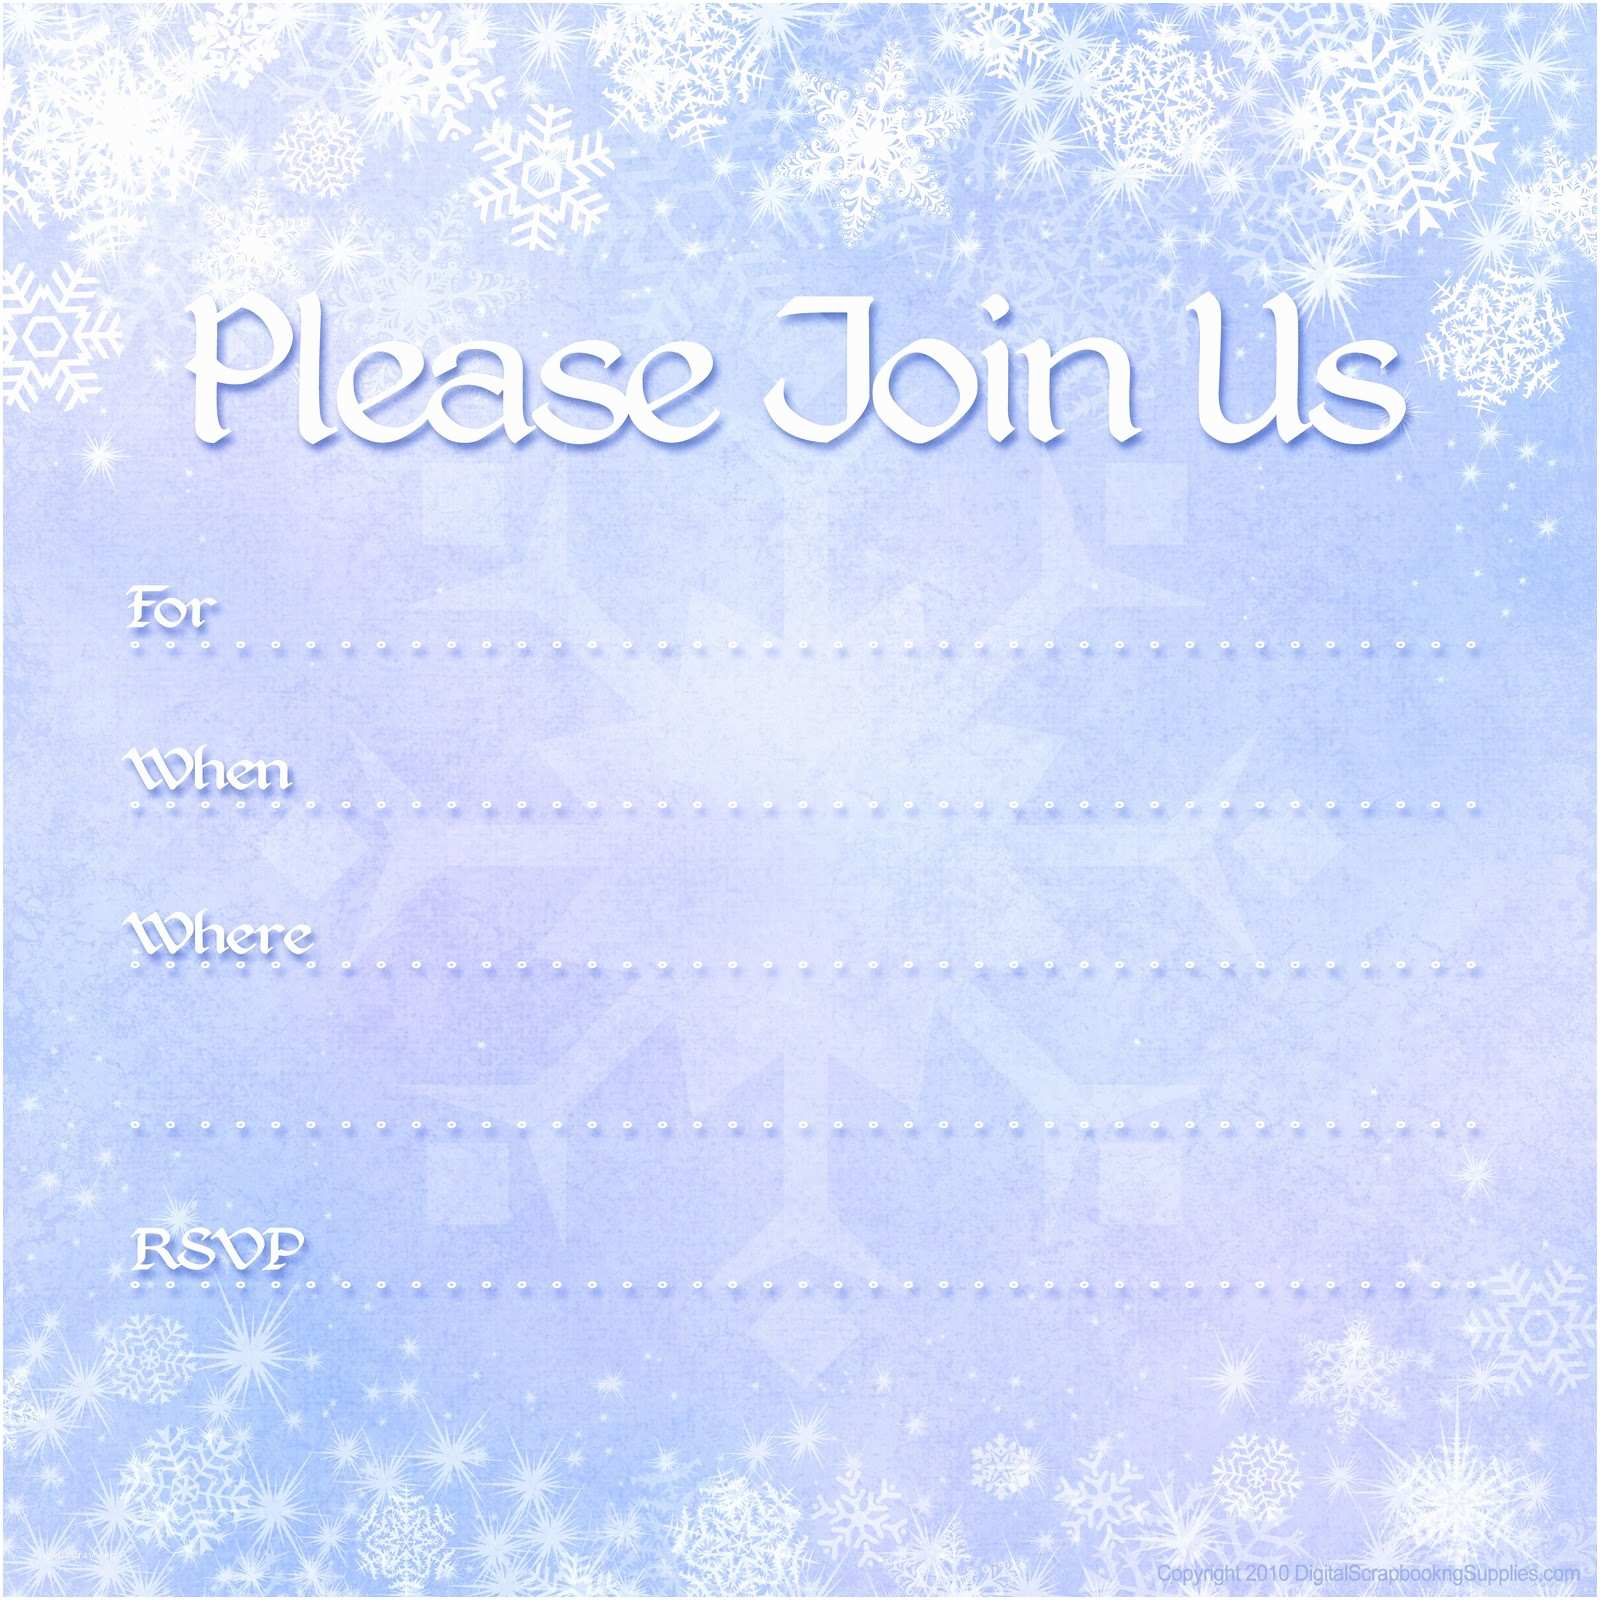 Winter Party Invitations Free Printable Party Invitations Free Winter Holiday